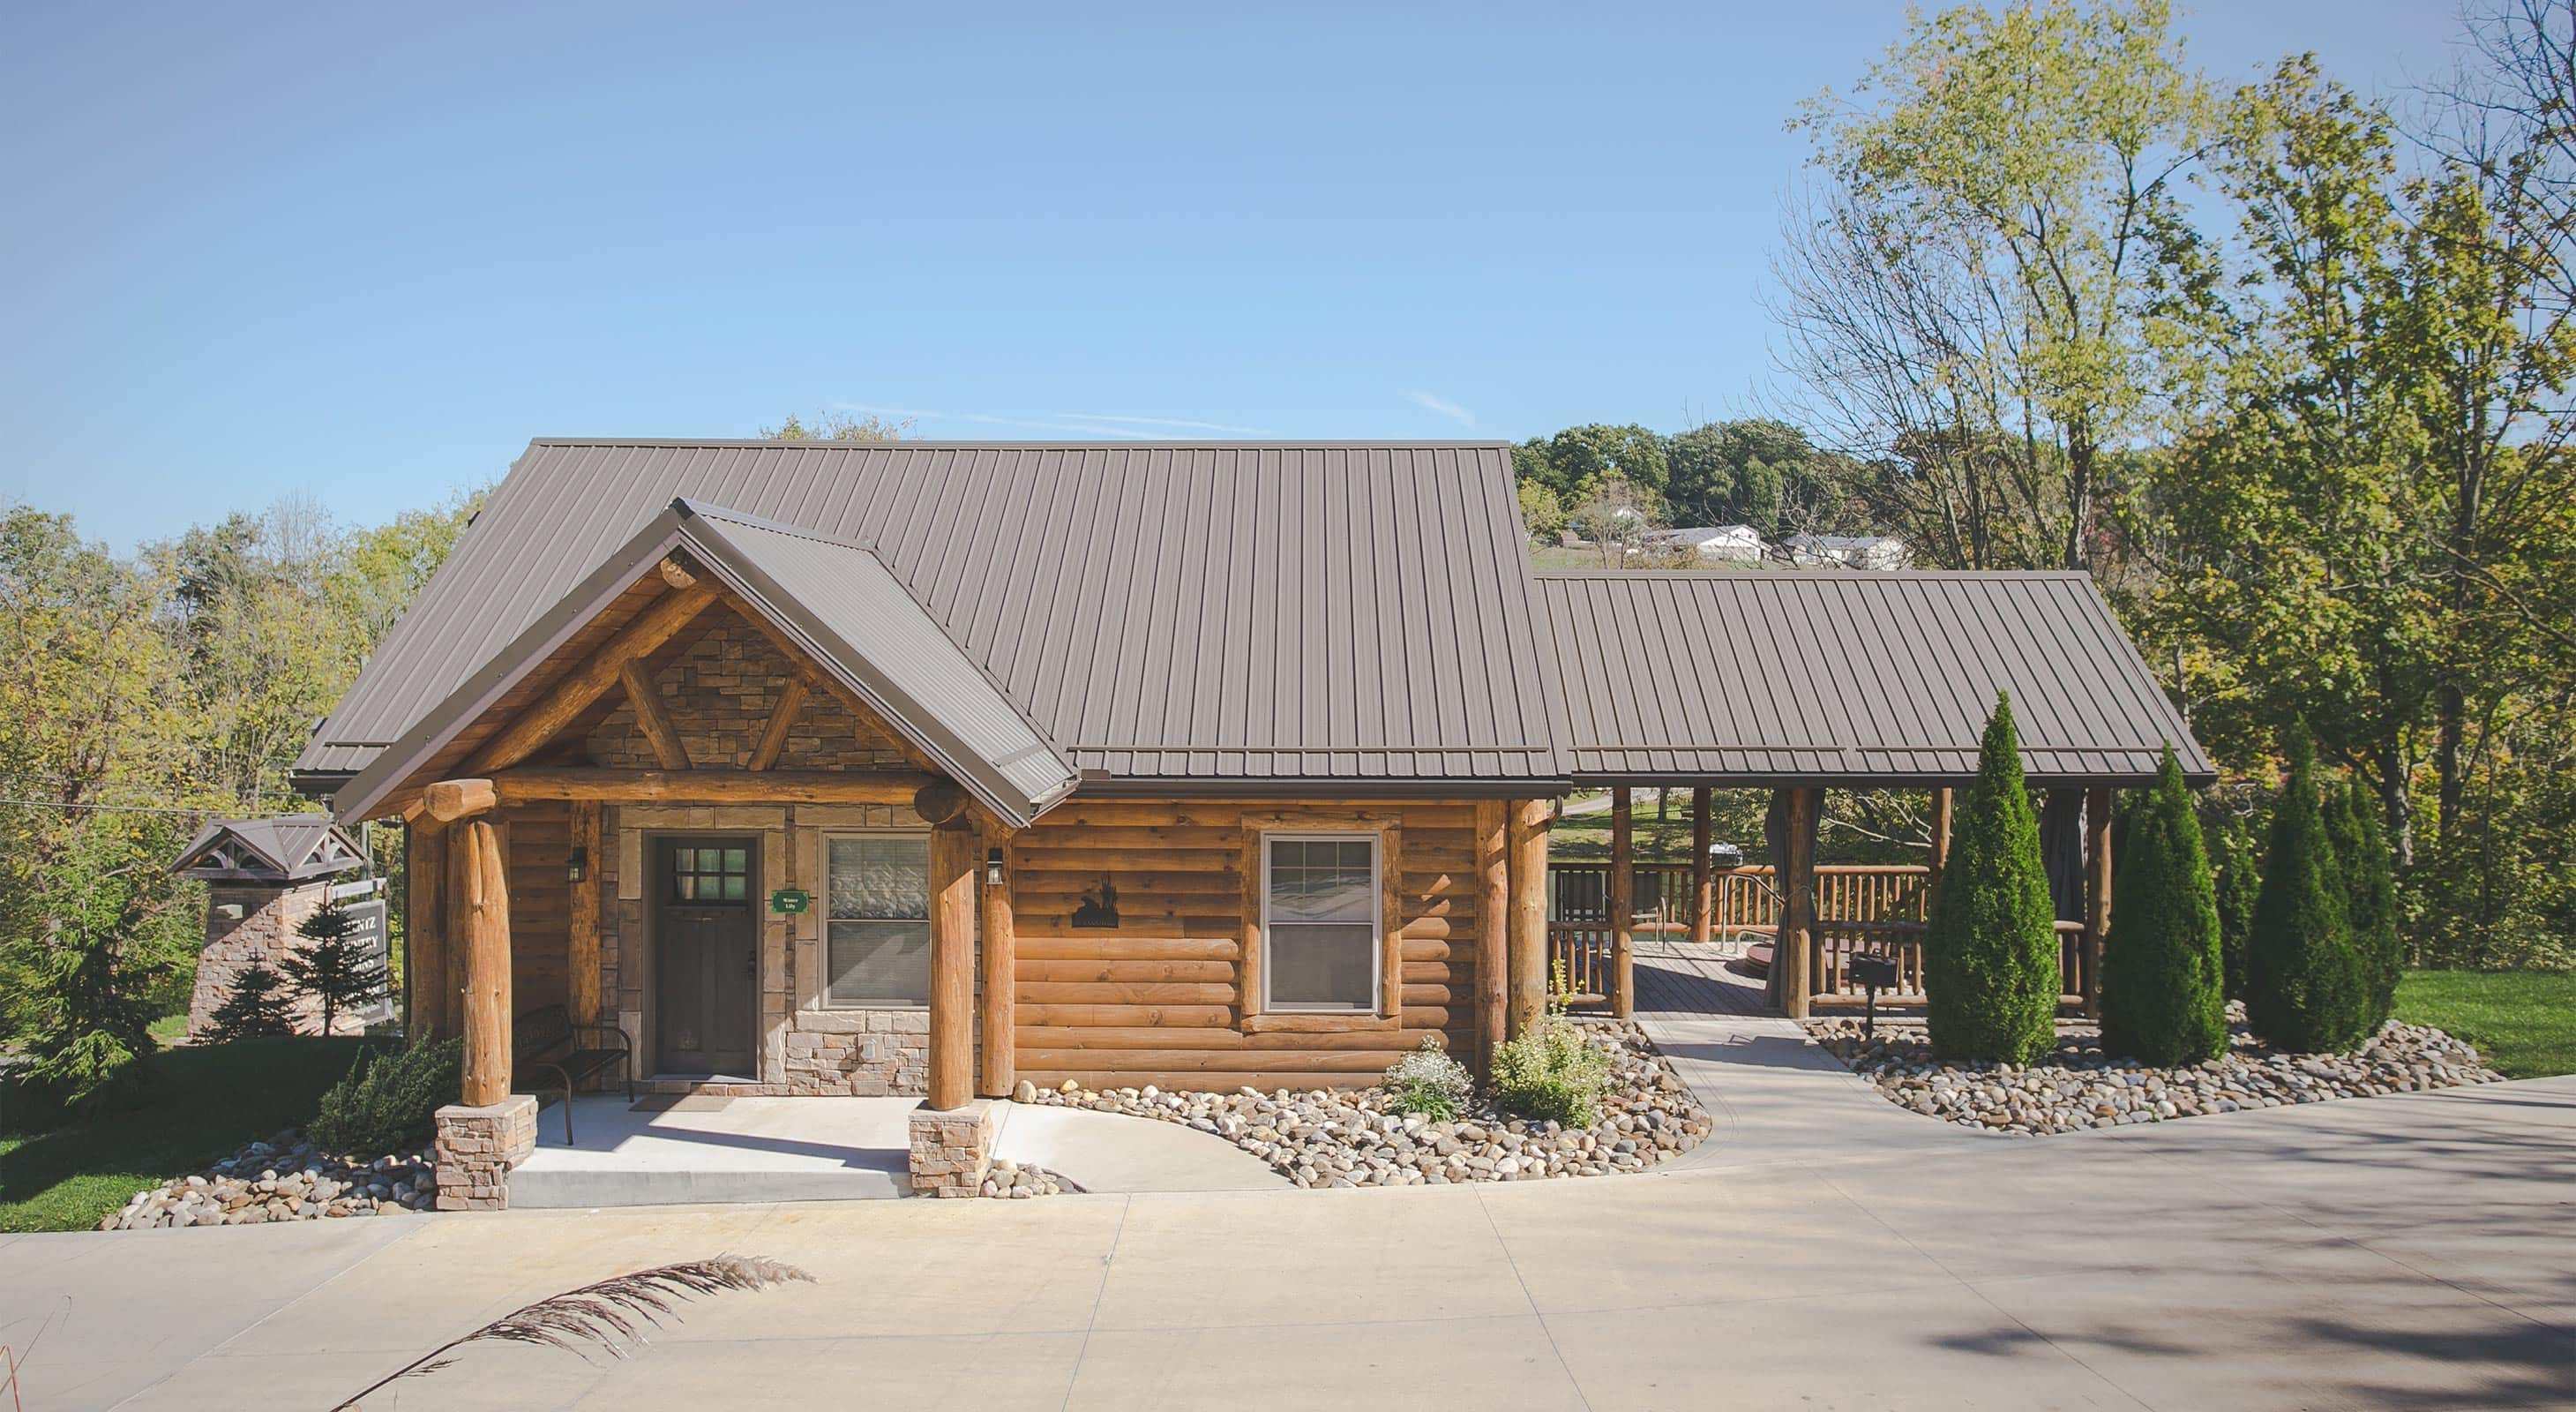 Exterior of Water Lily Log Cabin